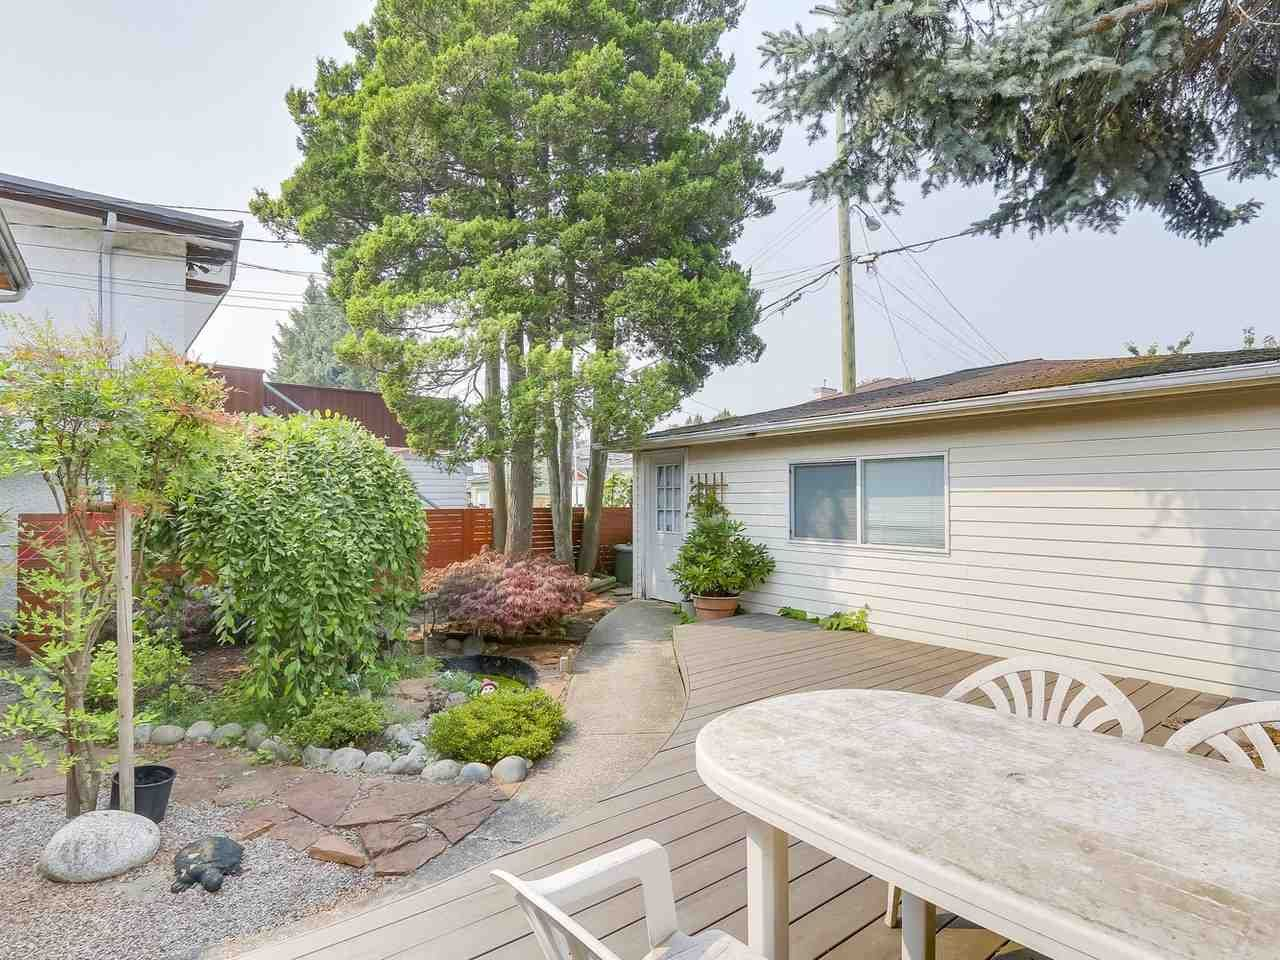 Photo 19: Photos: 165 E 55TH AVENUE in Vancouver: South Vancouver House for sale (Vancouver East)  : MLS®# R2297472